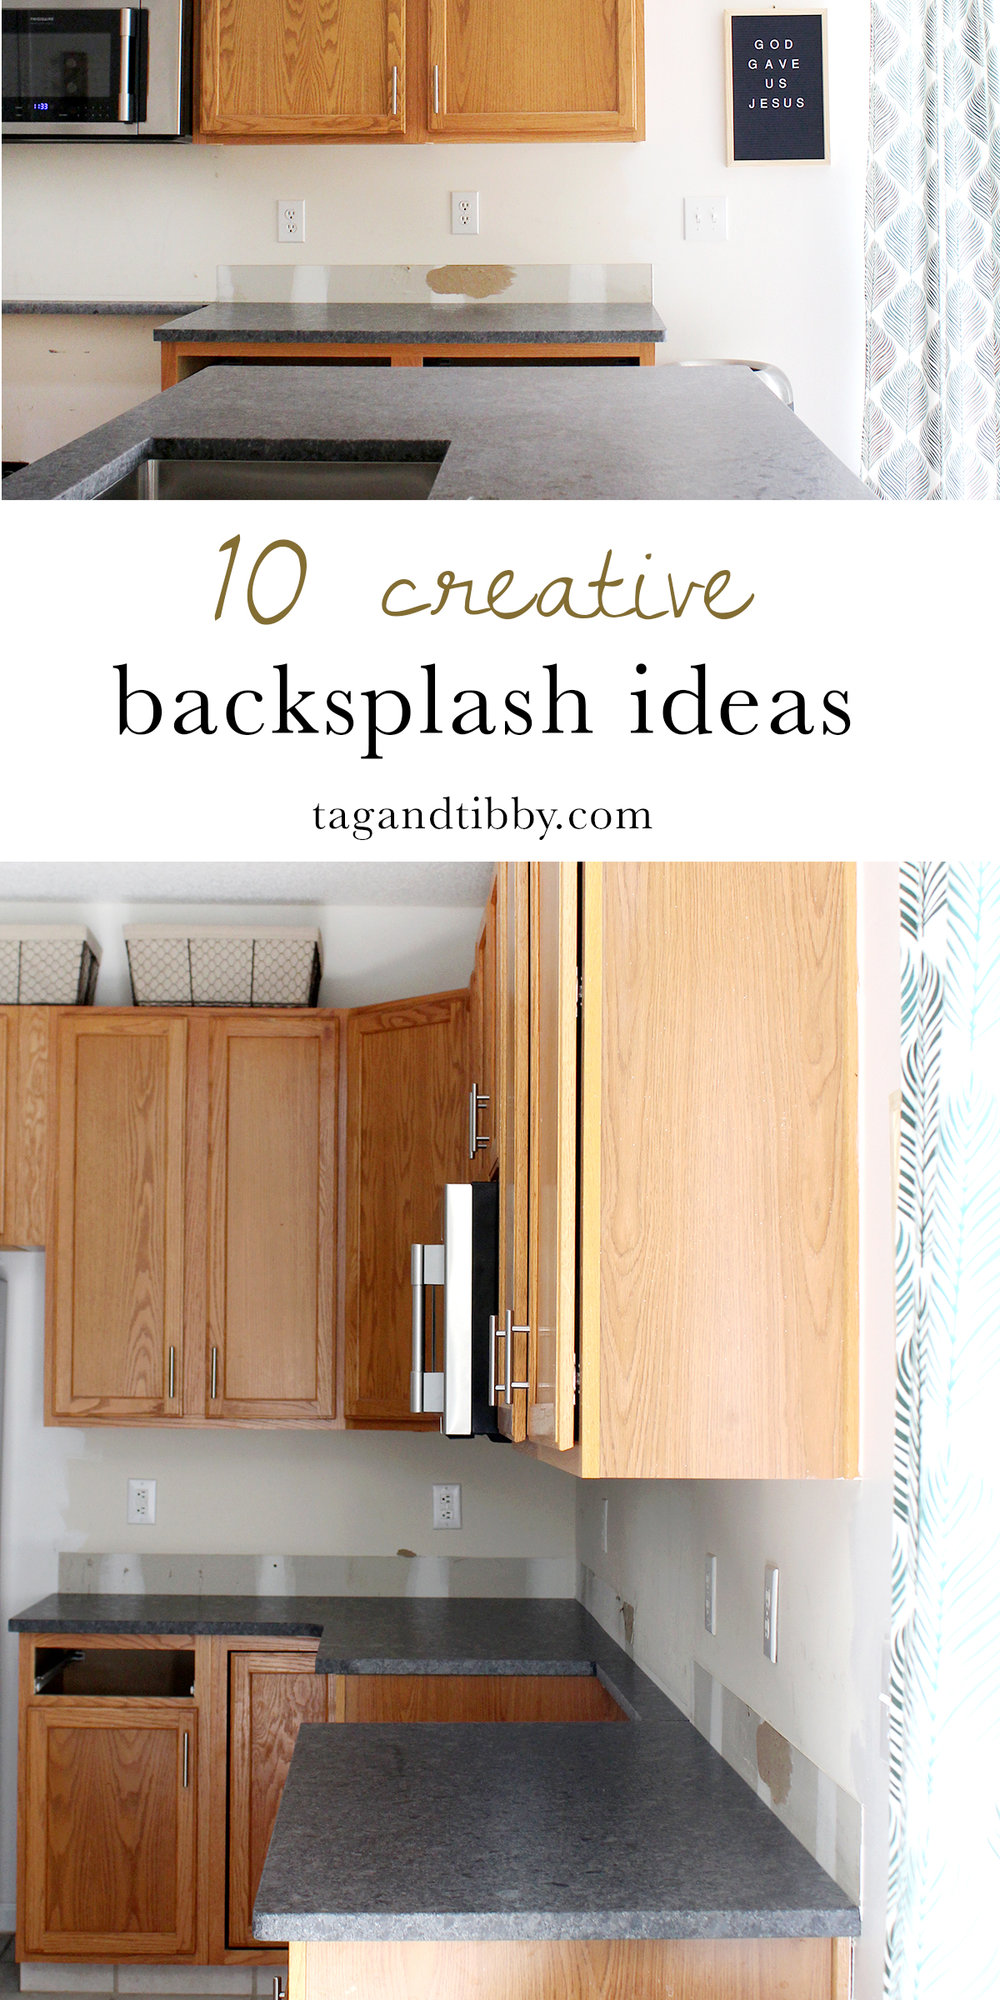 10 unique backsplash ideas for the kitchen--from sharpies to brass to wood paneling. These are inspiring!